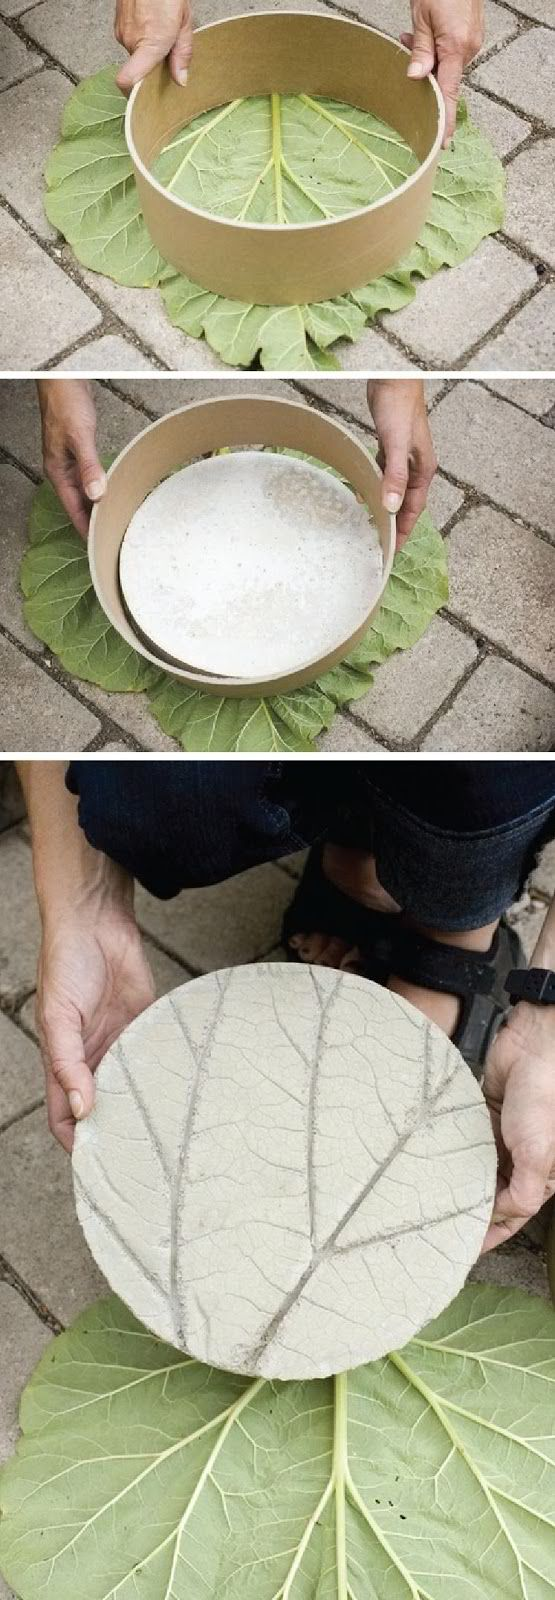 DIY Garden Stone that Looks Like a Leaf